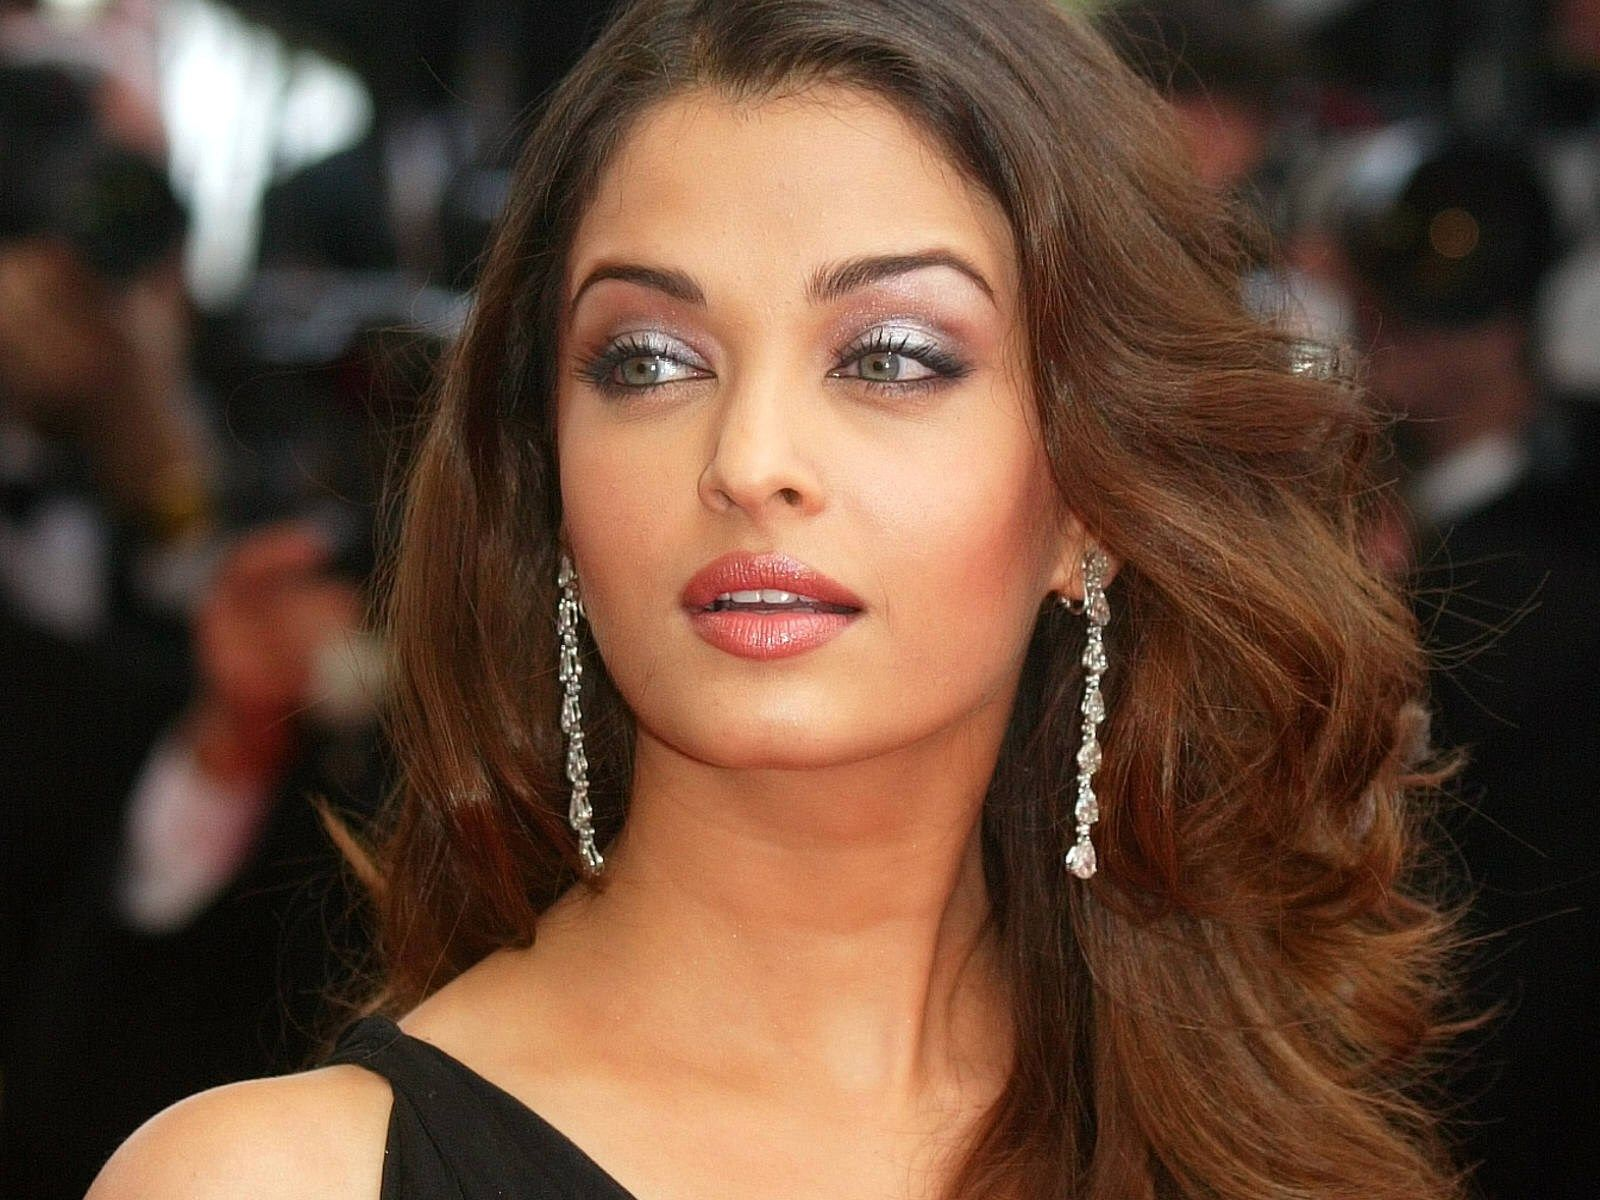 Aishwarya Rai ~ men's dreams